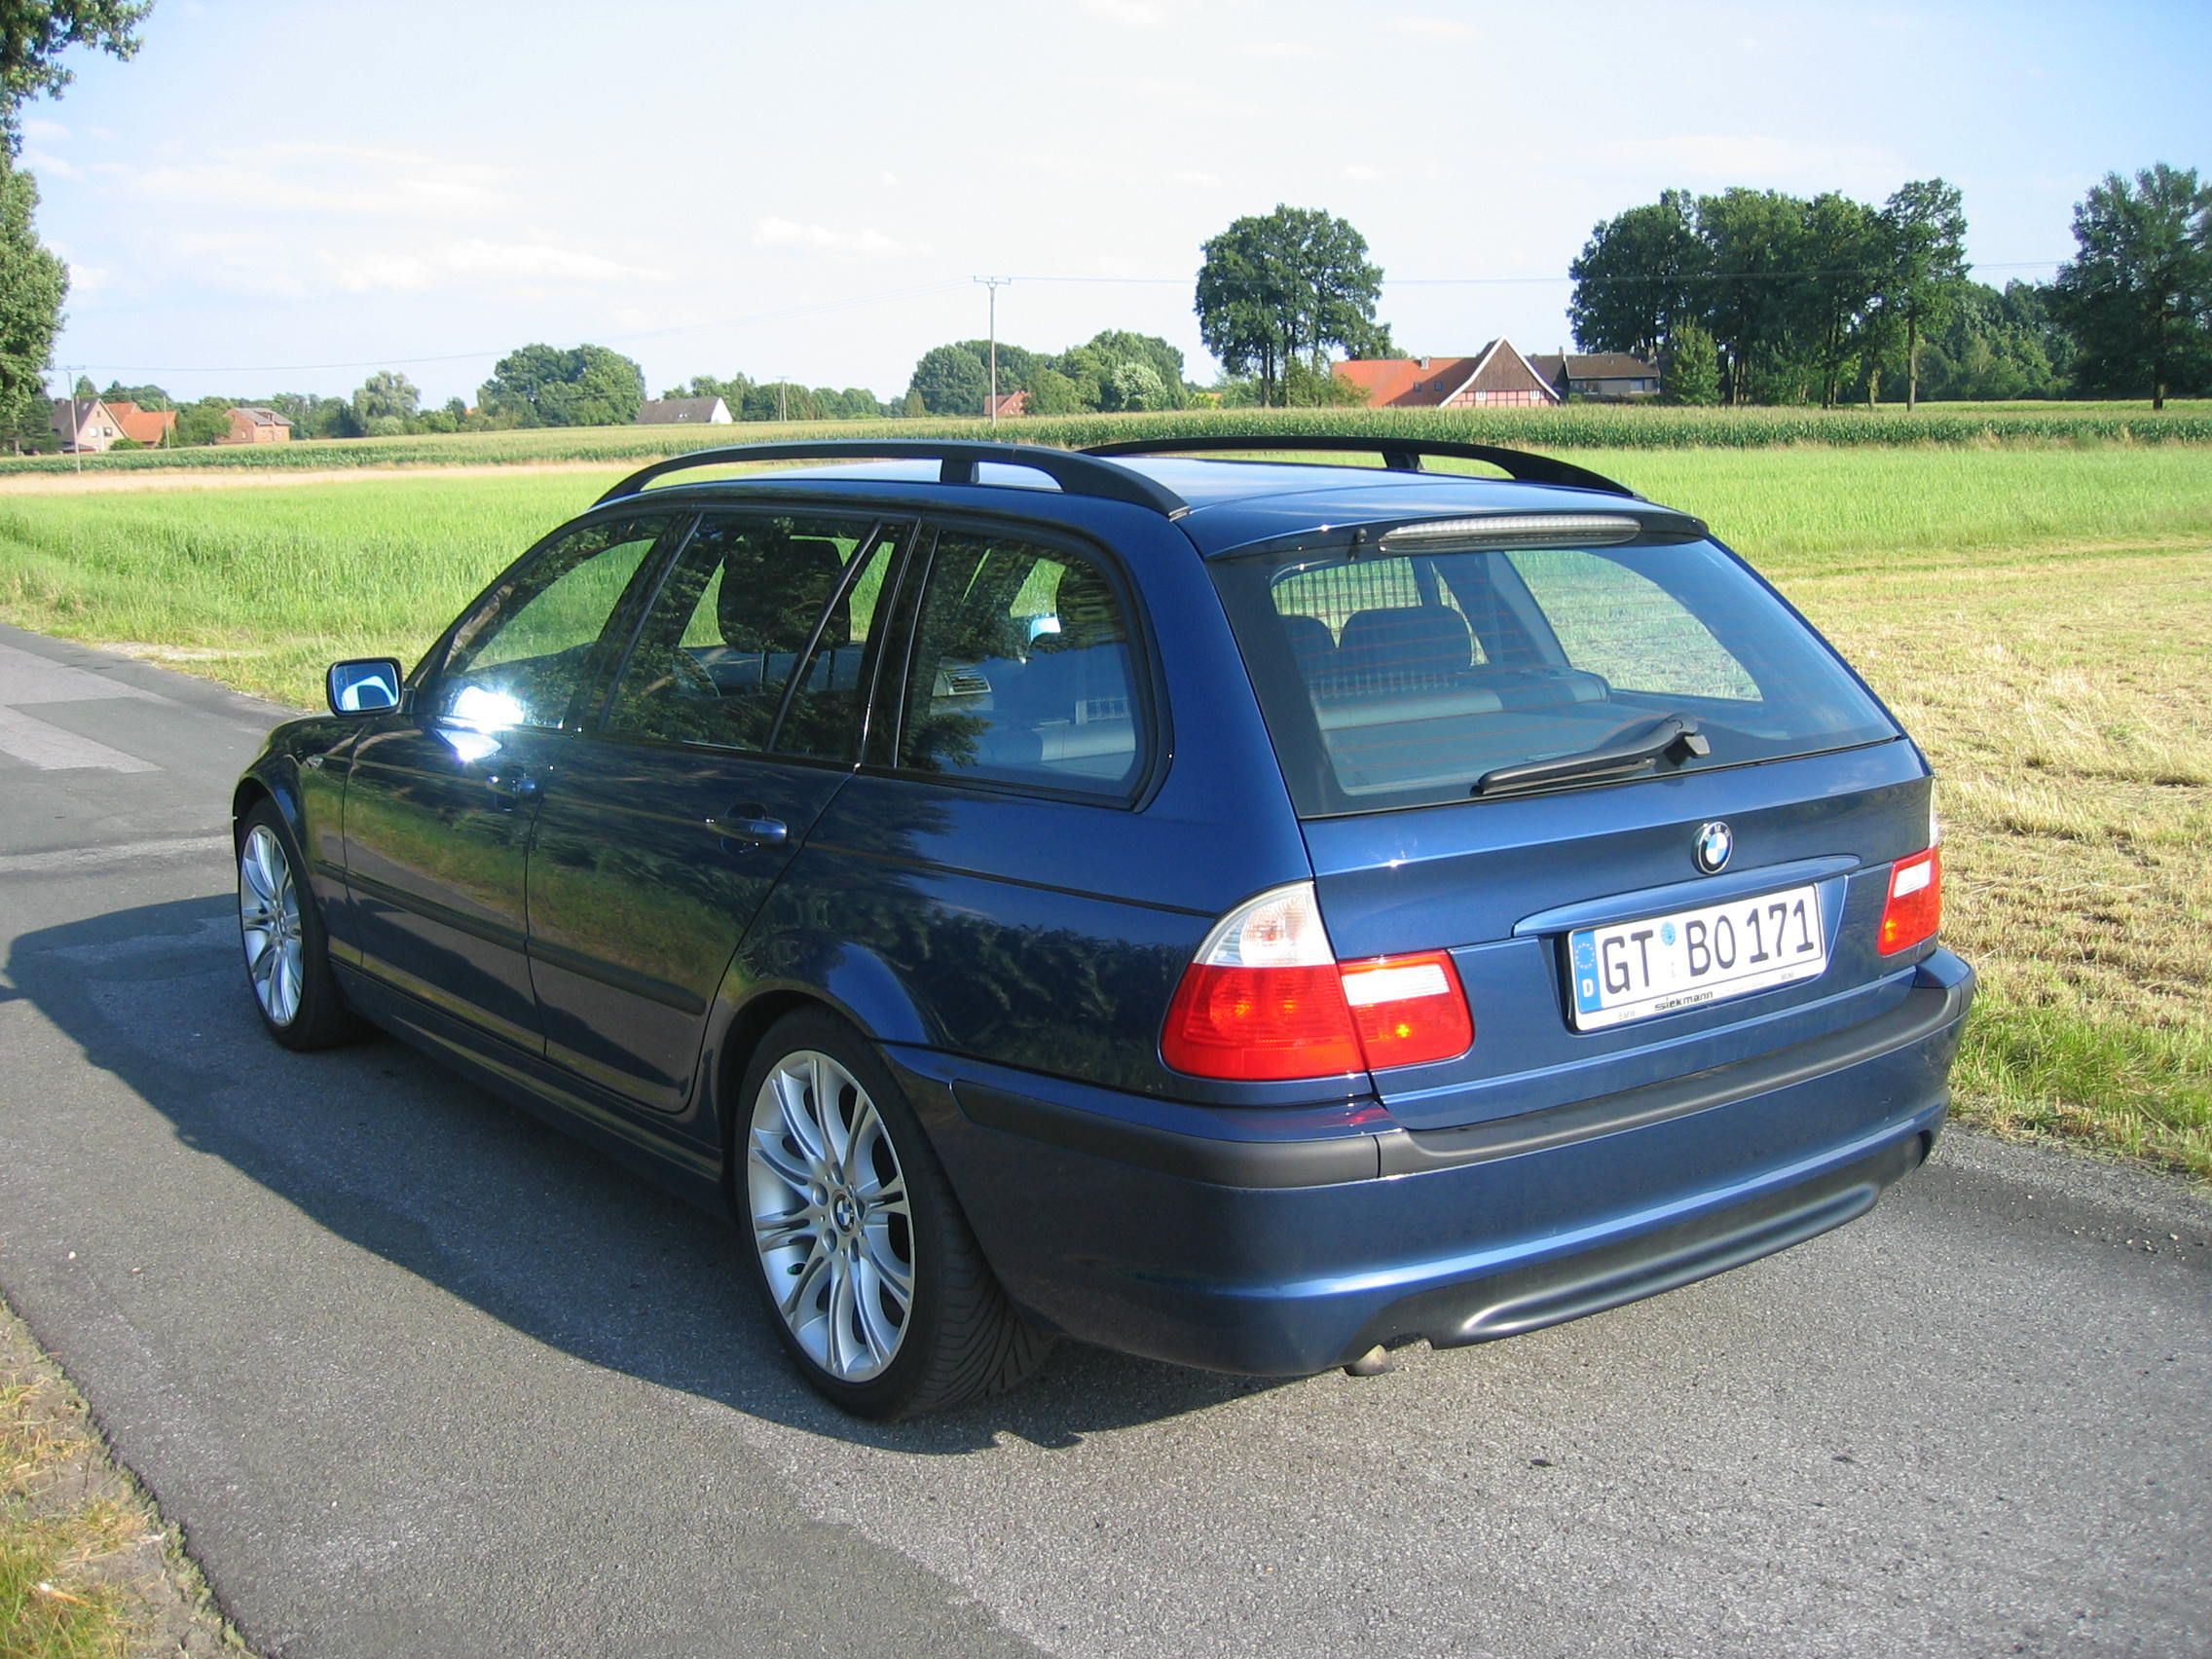 biete e46 touring edition sport 320d ez 2003 ca 67000 km biete bmw. Black Bedroom Furniture Sets. Home Design Ideas